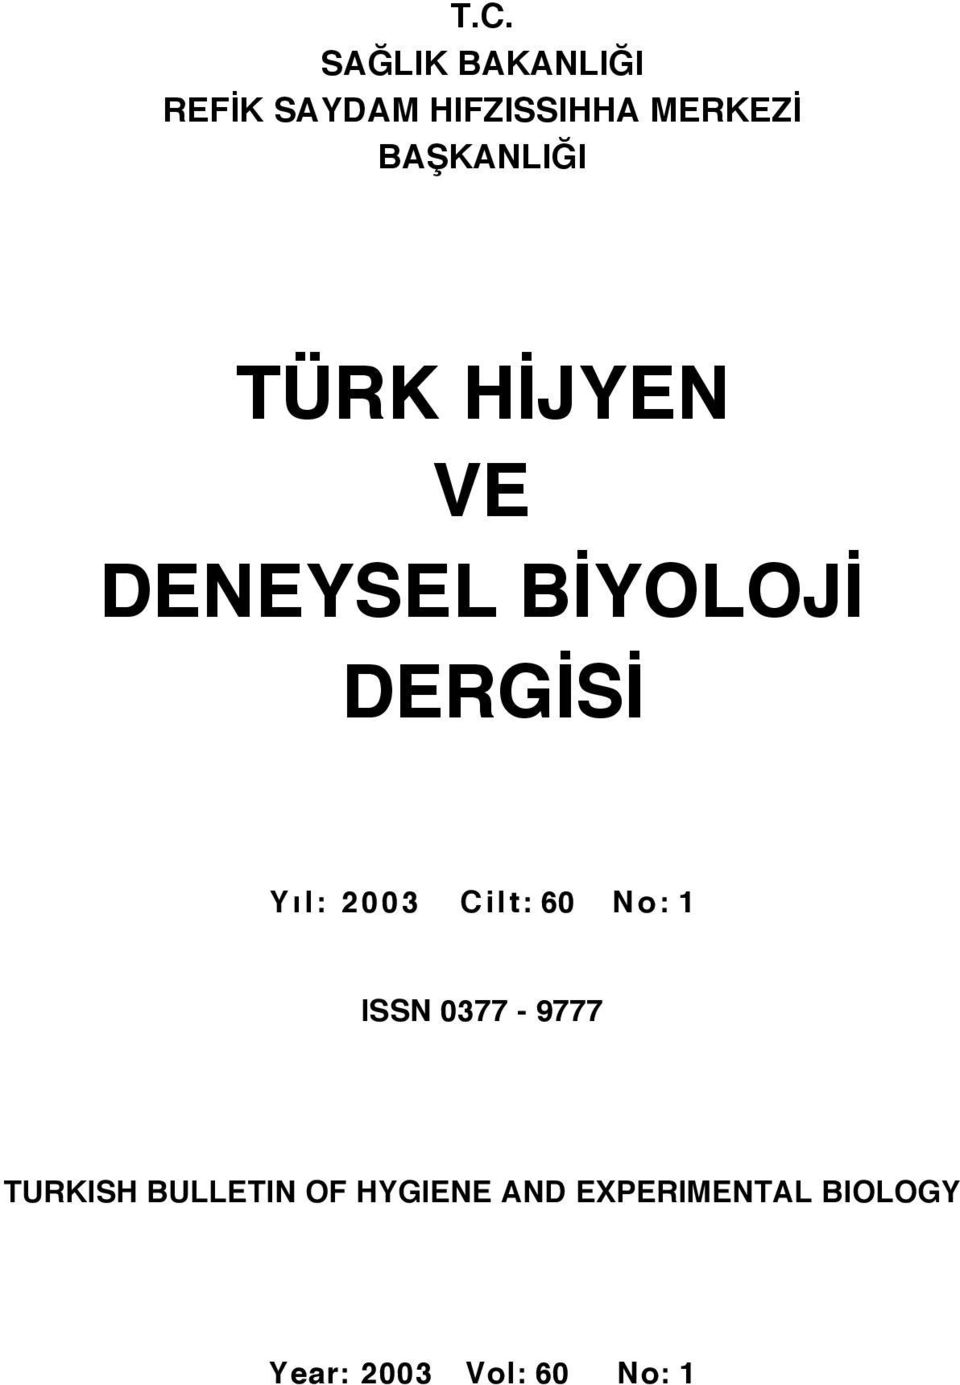 2003 C ilt: 60 N o : 1 ISSN 0377-9777 TURKISH BULLETIN